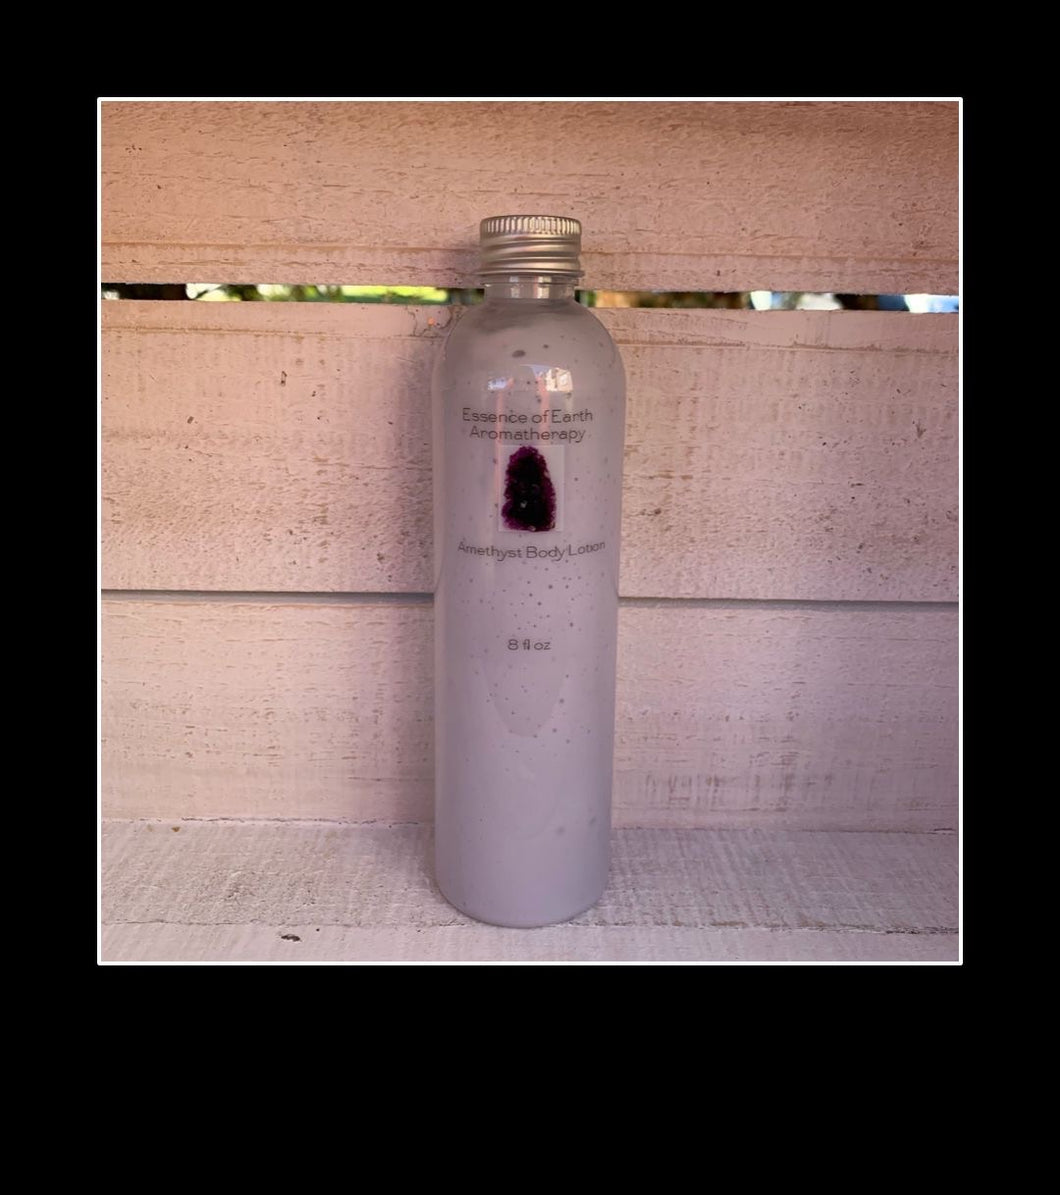 Amethyst Luxury Body Lotion